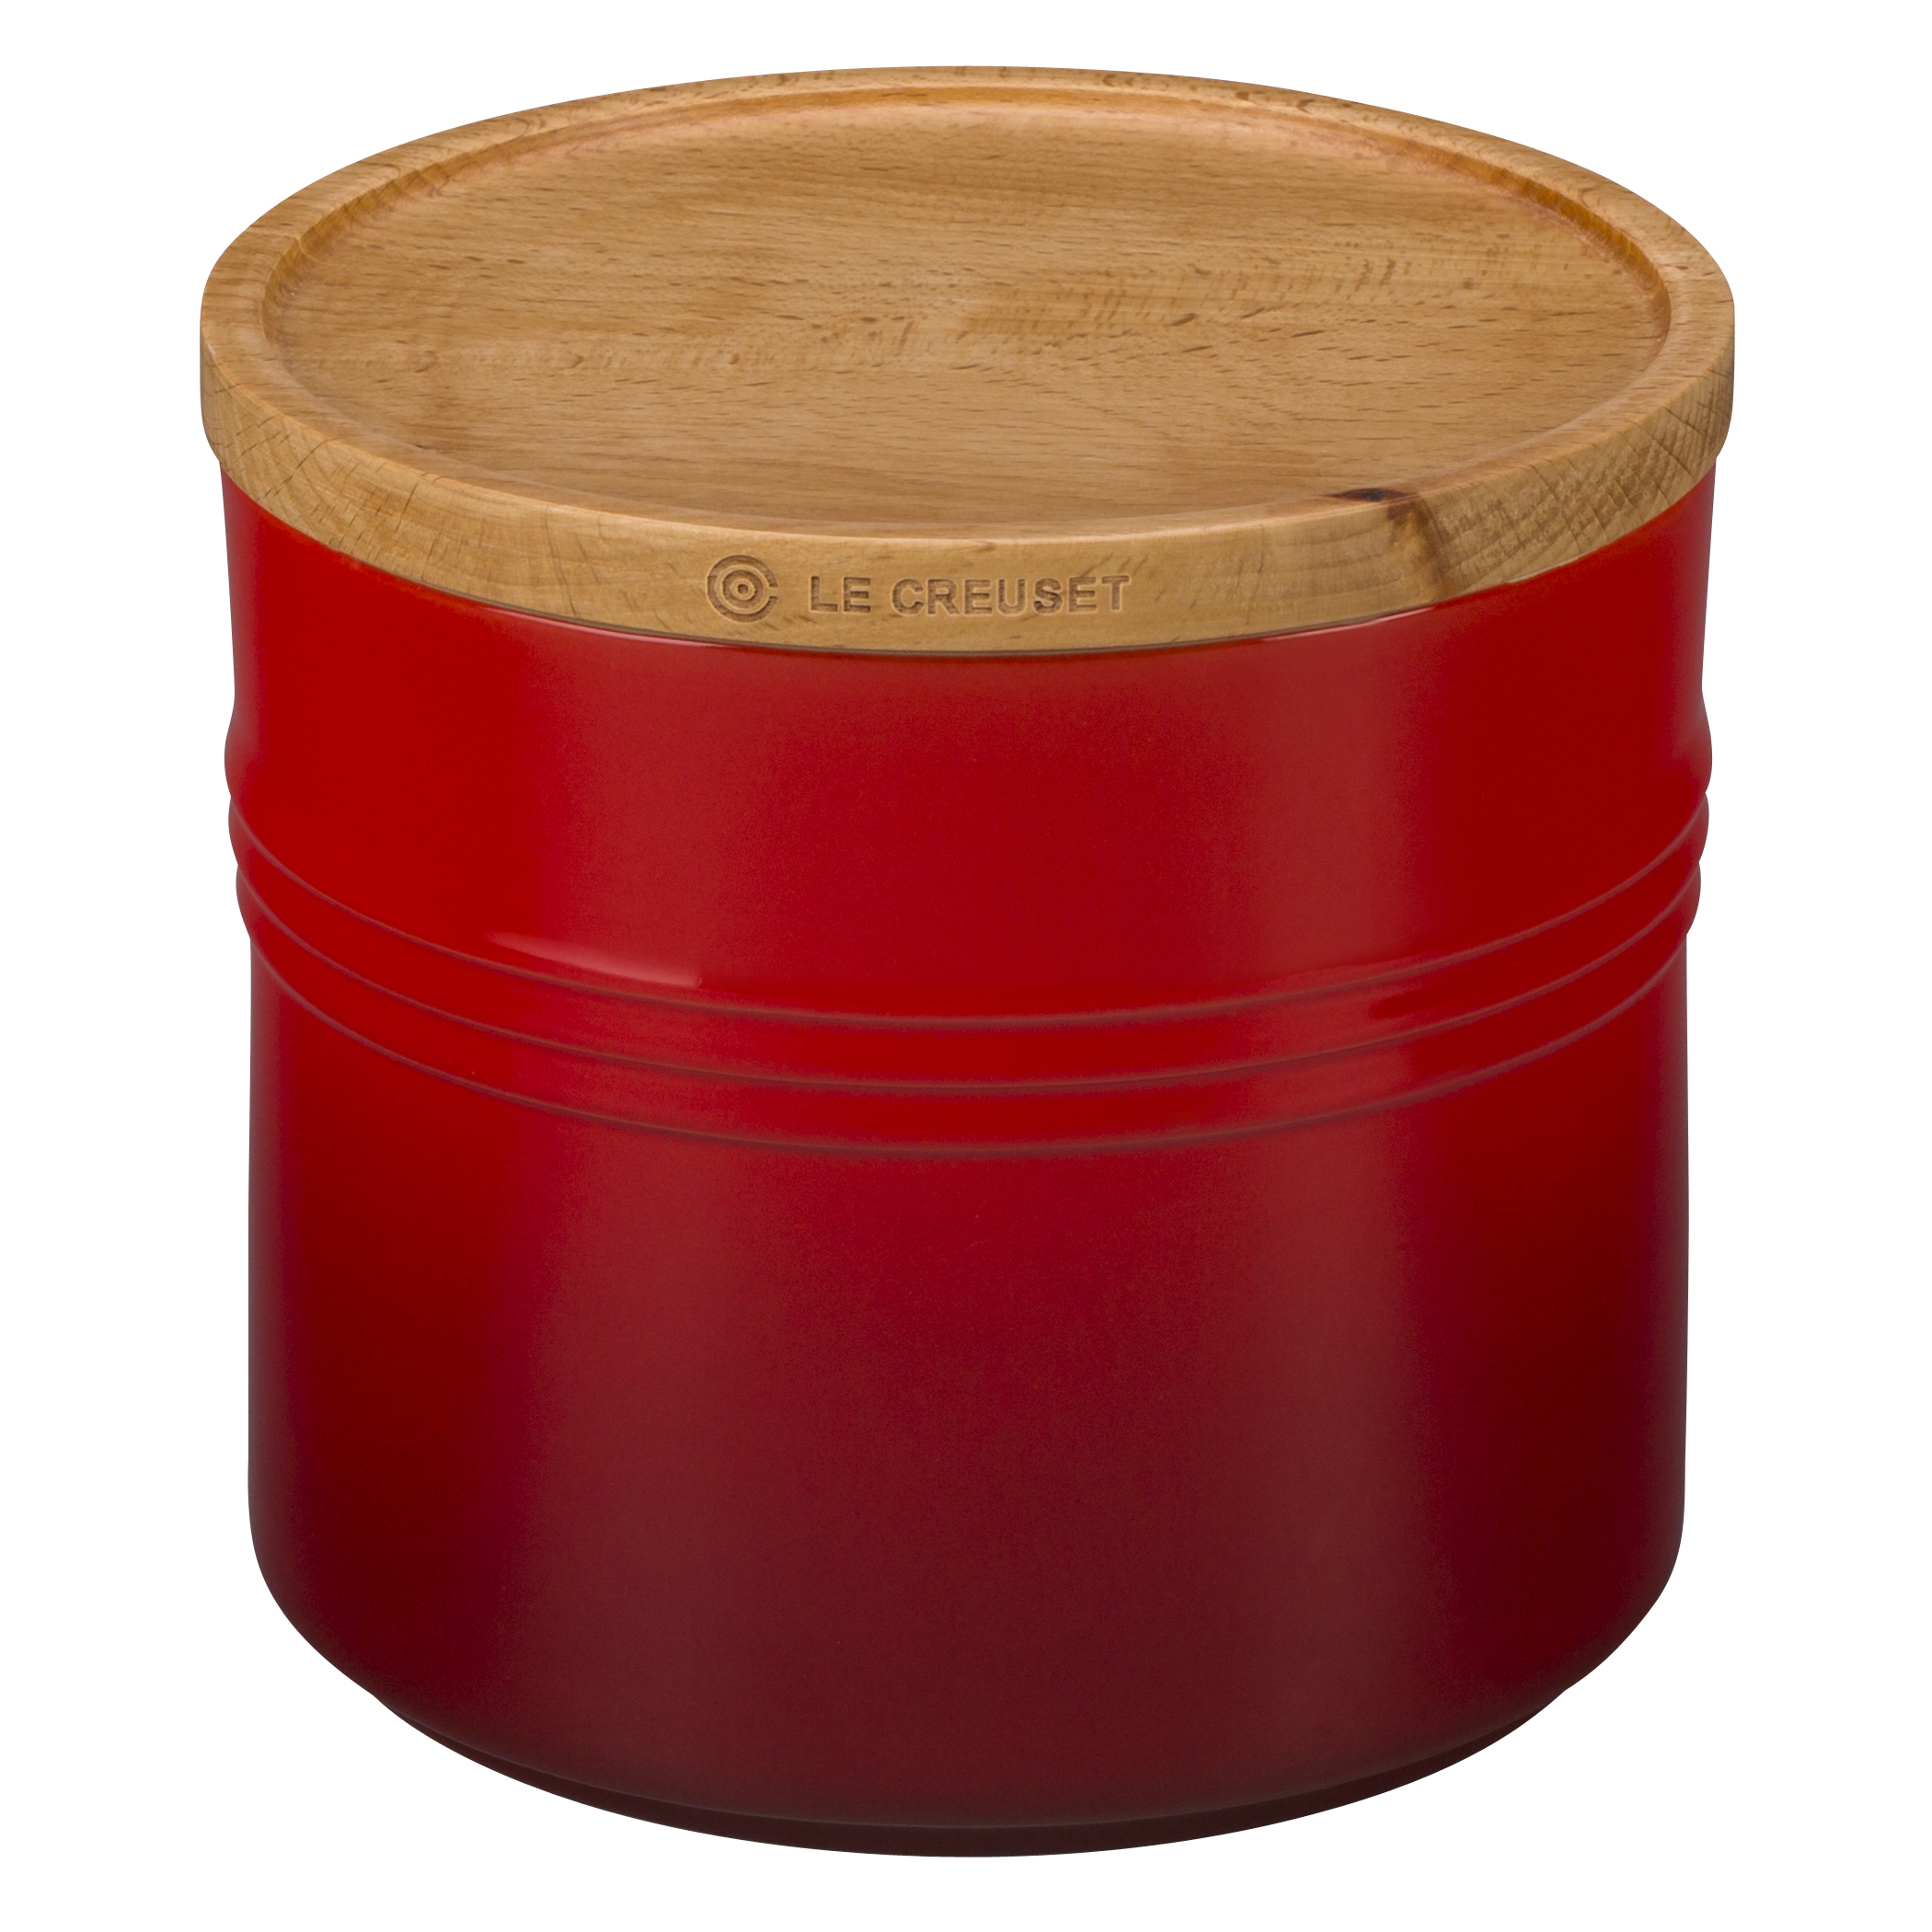 Le Creuset Cherry Stoneware 1.5 Quart Canister with Wooden Lid